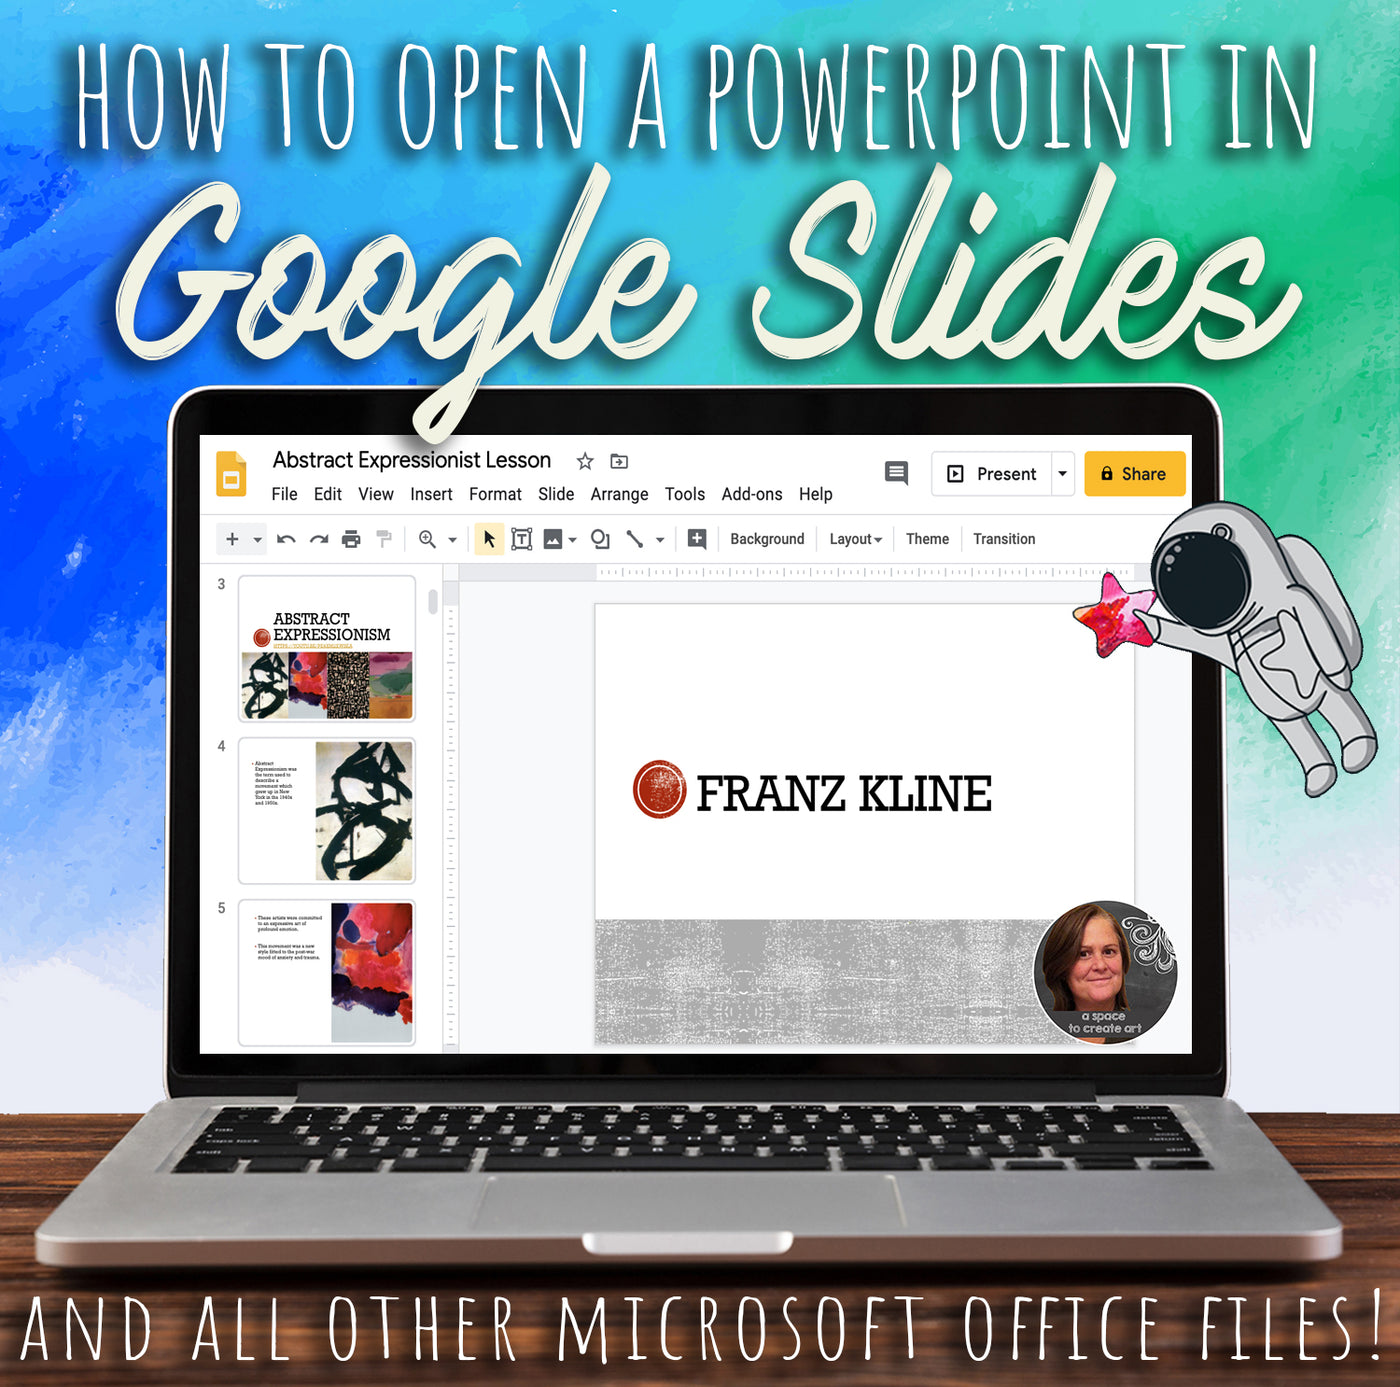 How to open a PowerPoint on Google Slides